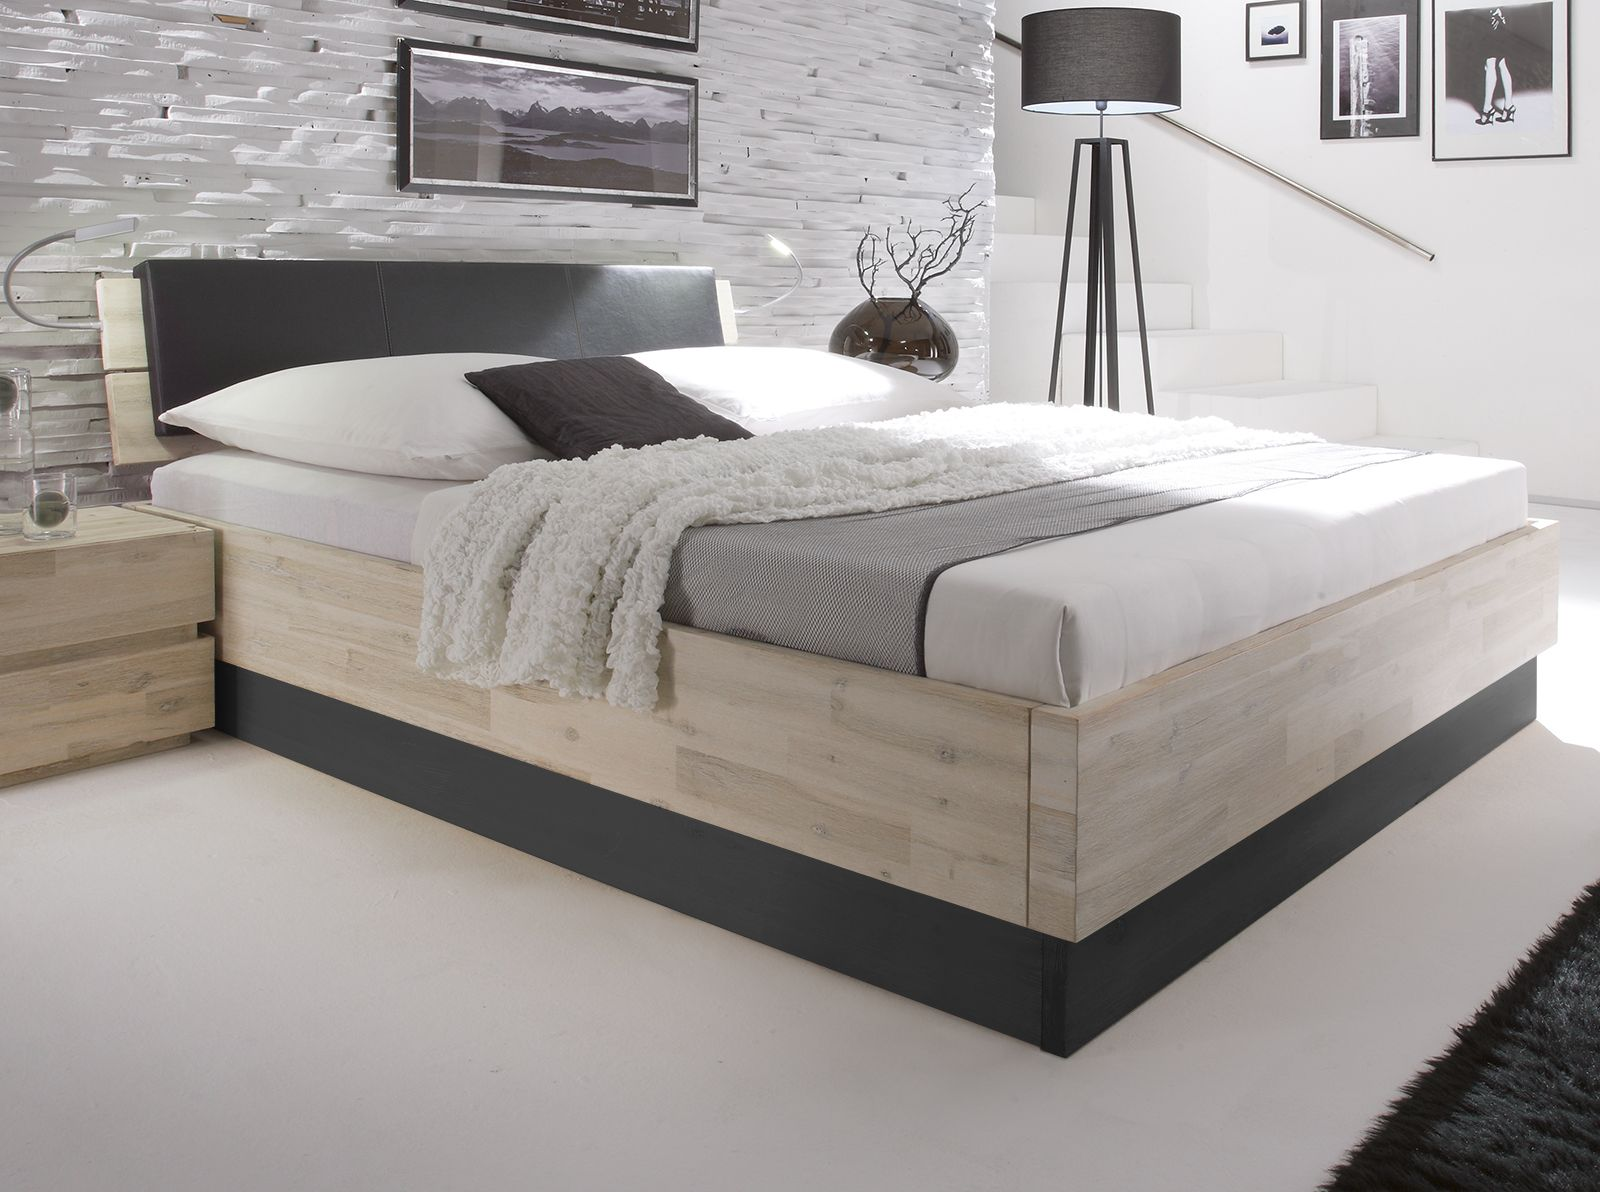 doppelbett imperia aus wei gebeizter akazie. Black Bedroom Furniture Sets. Home Design Ideas